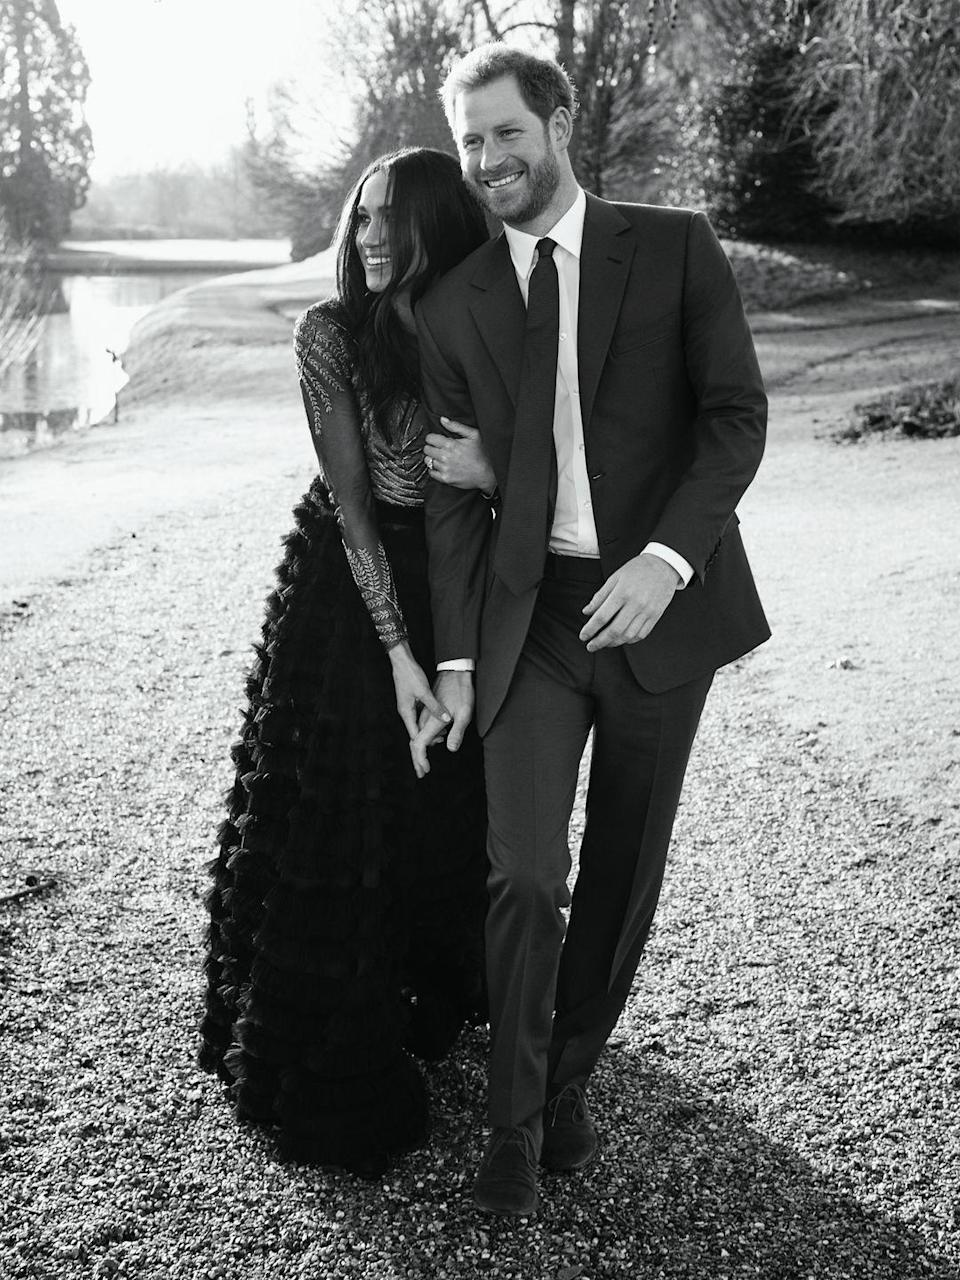 "<p><a href=""https://www.townandcountrymag.com/society/tradition/a14477448/prince-harry-meghan-markles-engagement-photos/"" rel=""nofollow noopener"" target=""_blank"" data-ylk=""slk:See every photo from their engagement shoot here."" class=""link rapid-noclick-resp"">See every photo from their engagement shoot here.</a></p>"